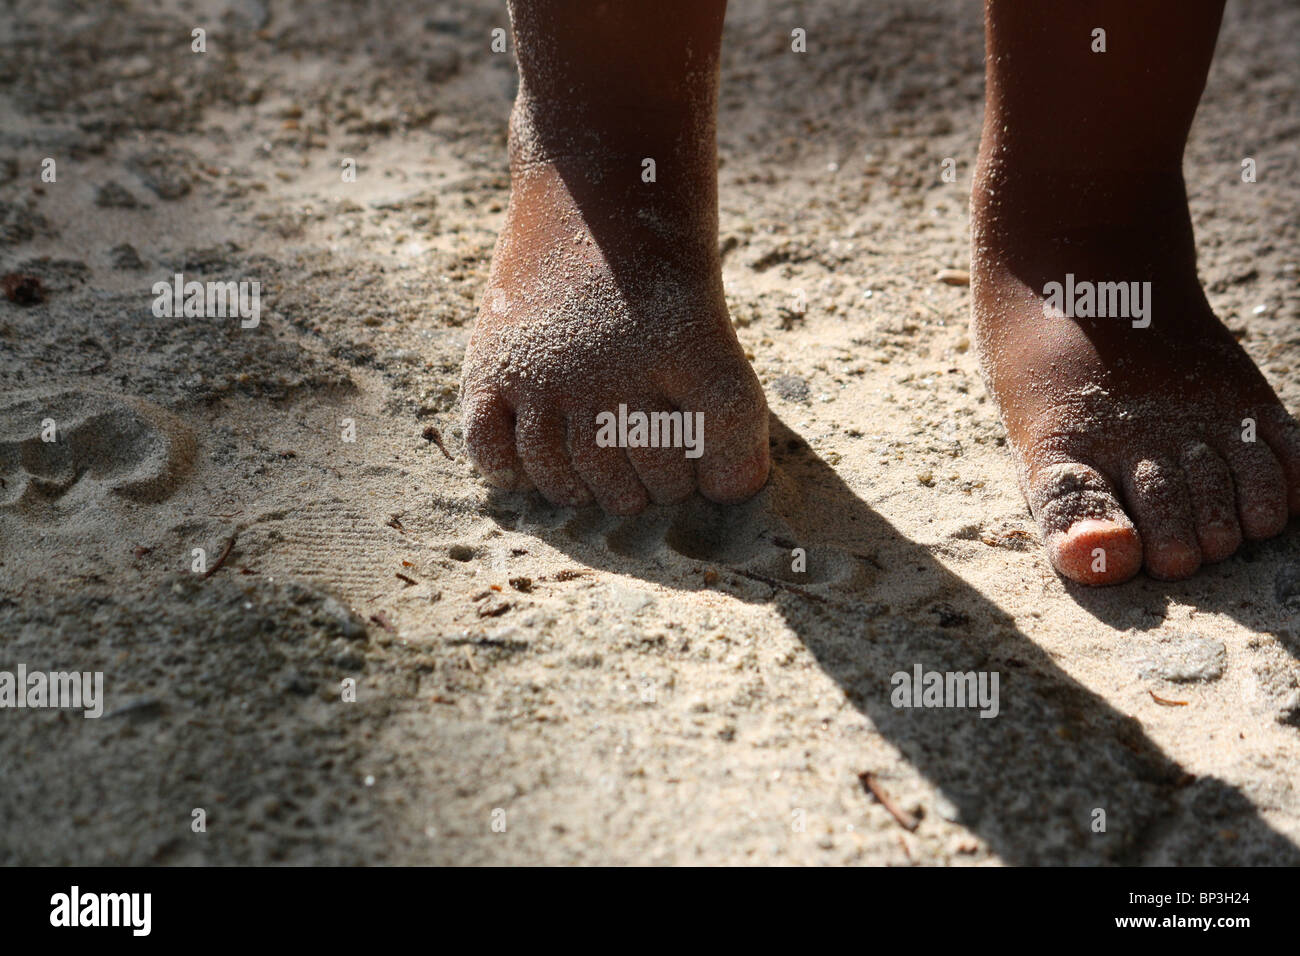 young girl's bare feet and toes in sand stock photo: 30812044 - alamy